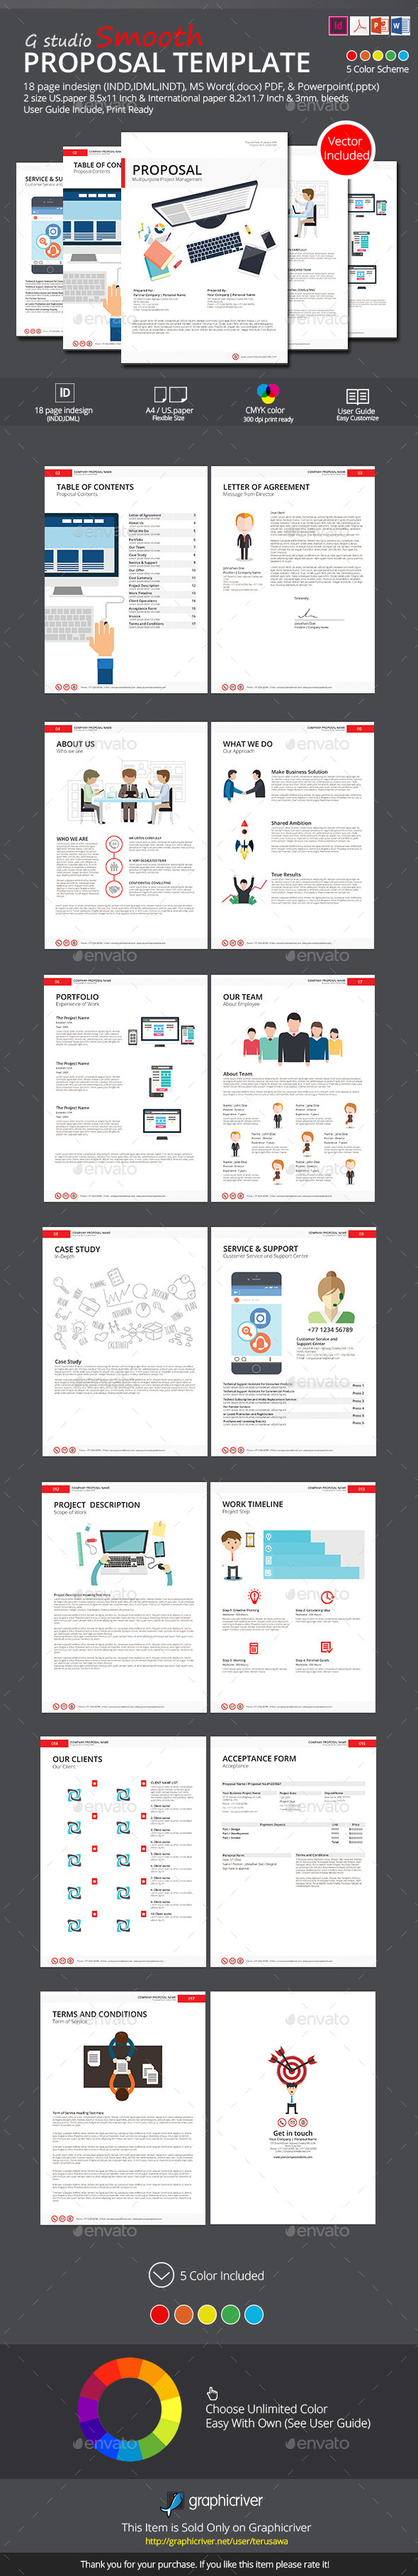 Smooth Proposal Template - Proposals & Invoices Stationery